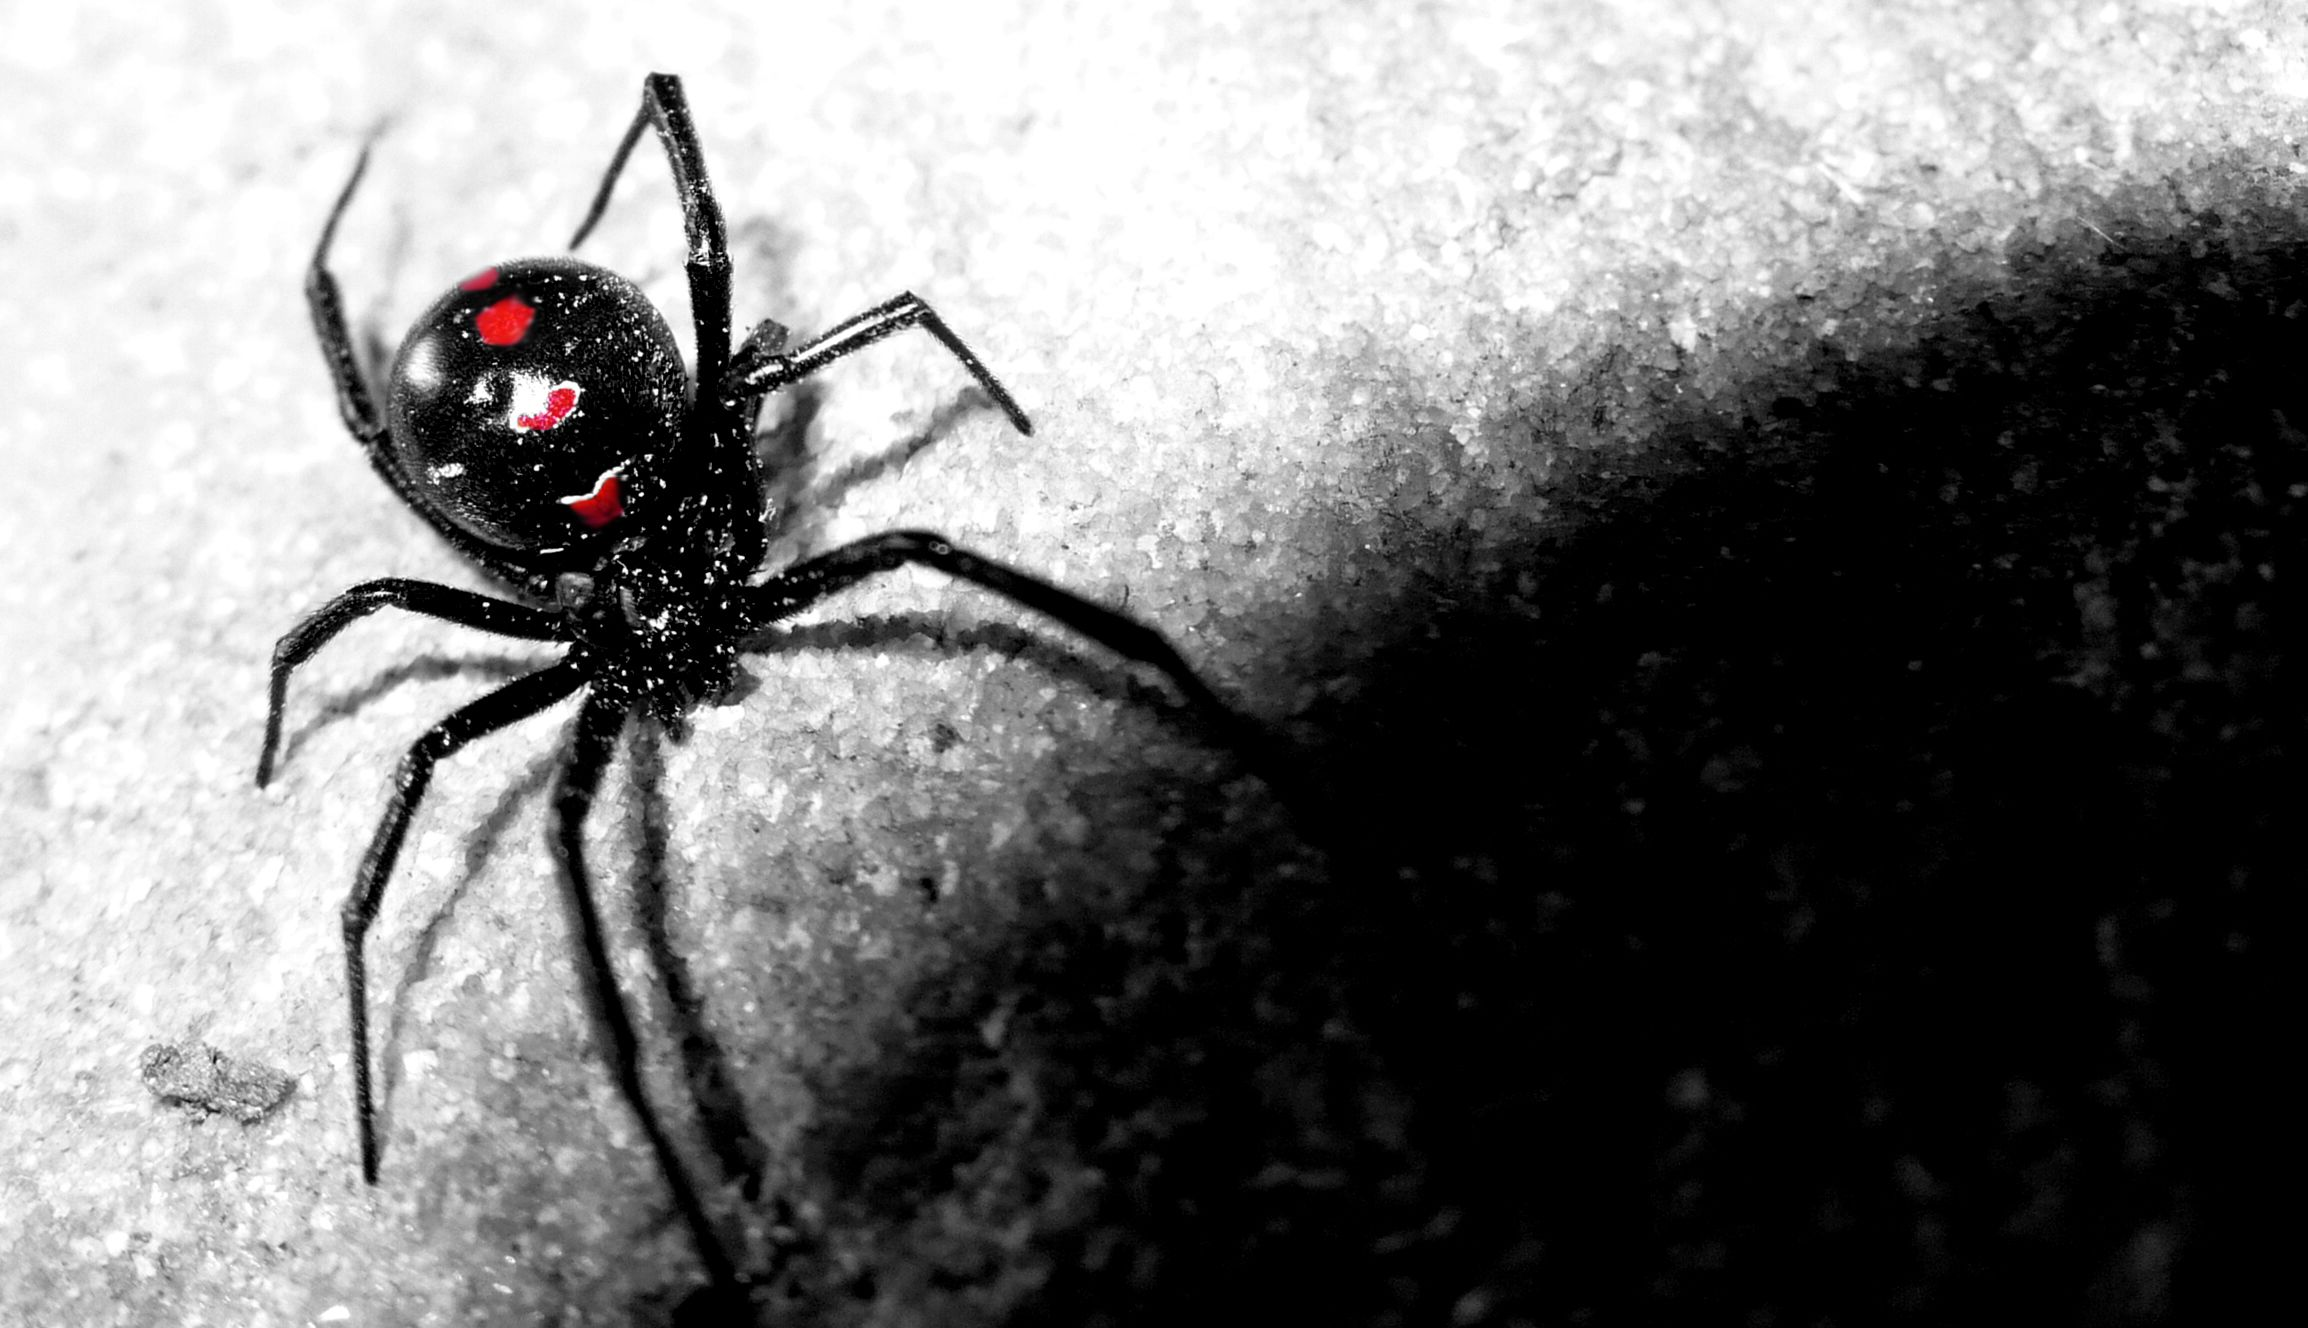 web bugs spiders black background 1920x1200 wallpaper - Animals ...